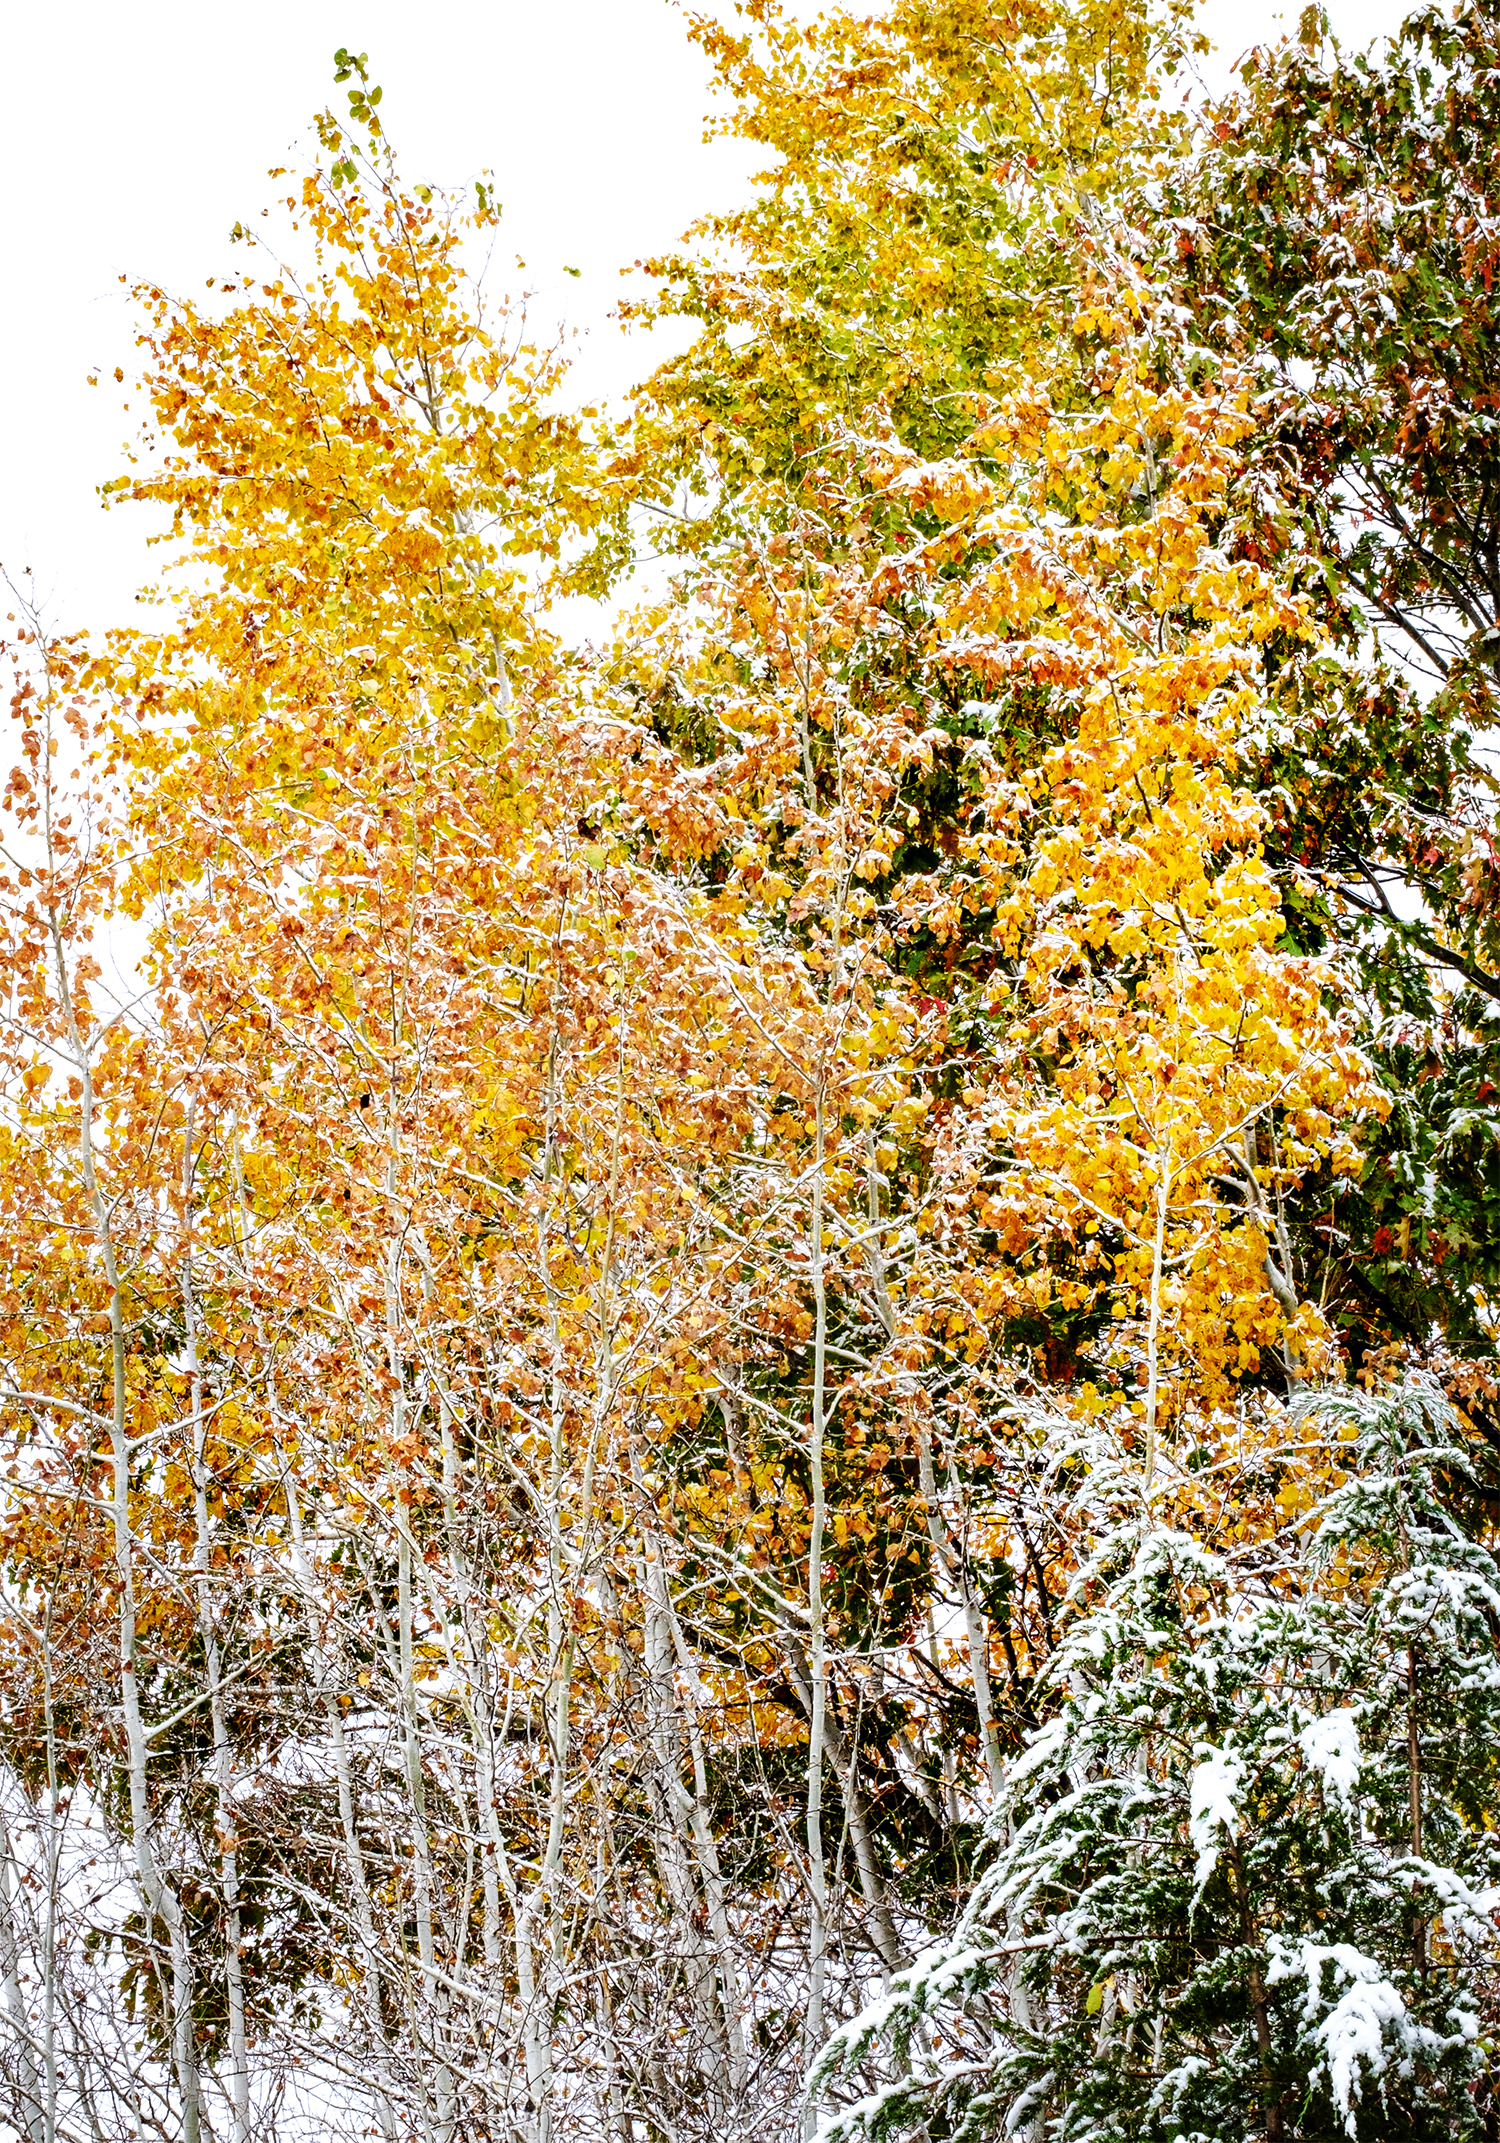 October snow at Black Elk- Neihardt Park